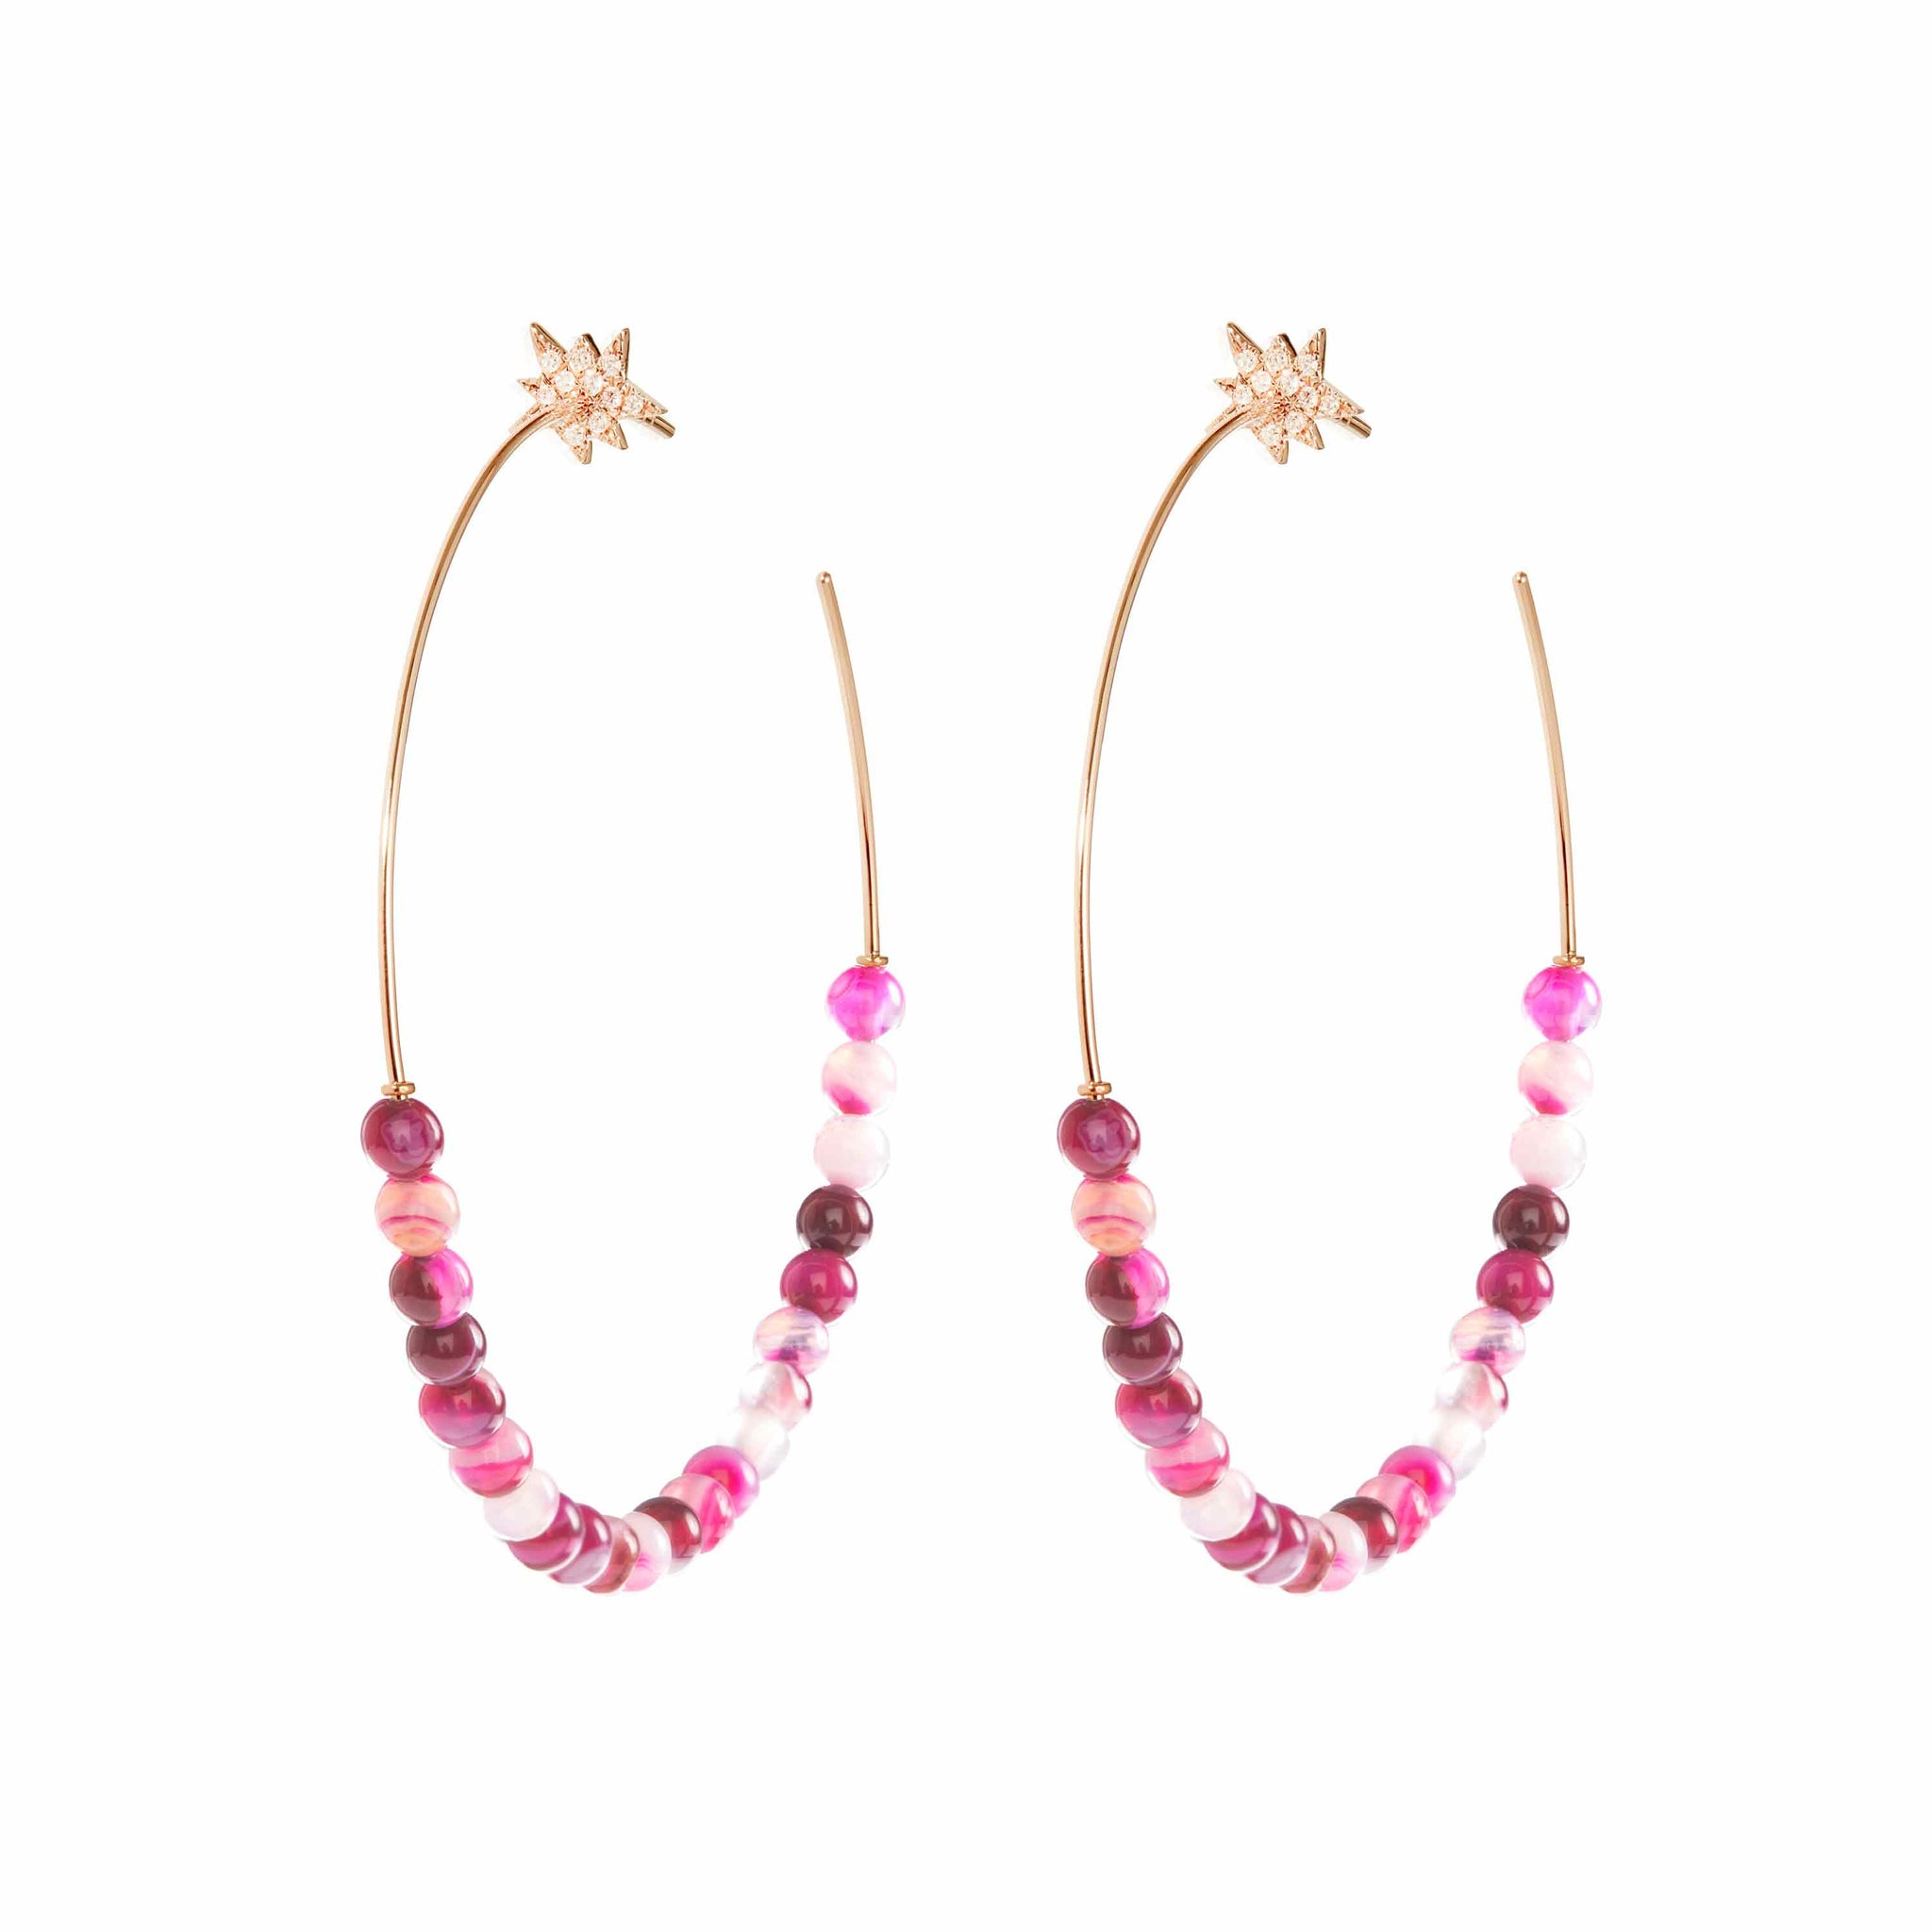 Diane Kordas Explosion Pink Agate Hoop Earrings